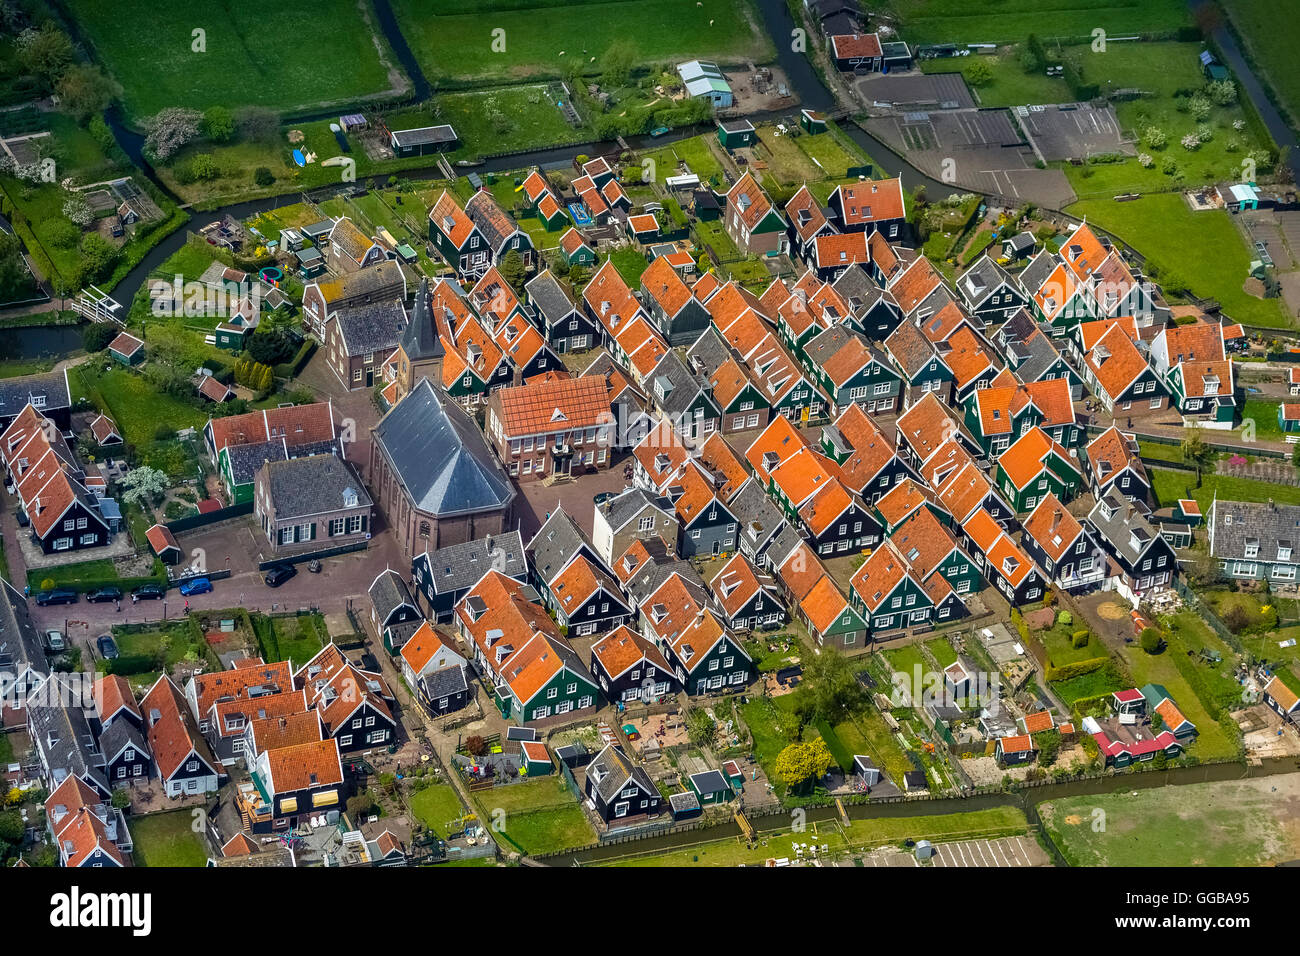 Aerial view, island of Marken, with small fishing houses and the town church, red roofs brands, small dutch houses,pointed - Stock Image